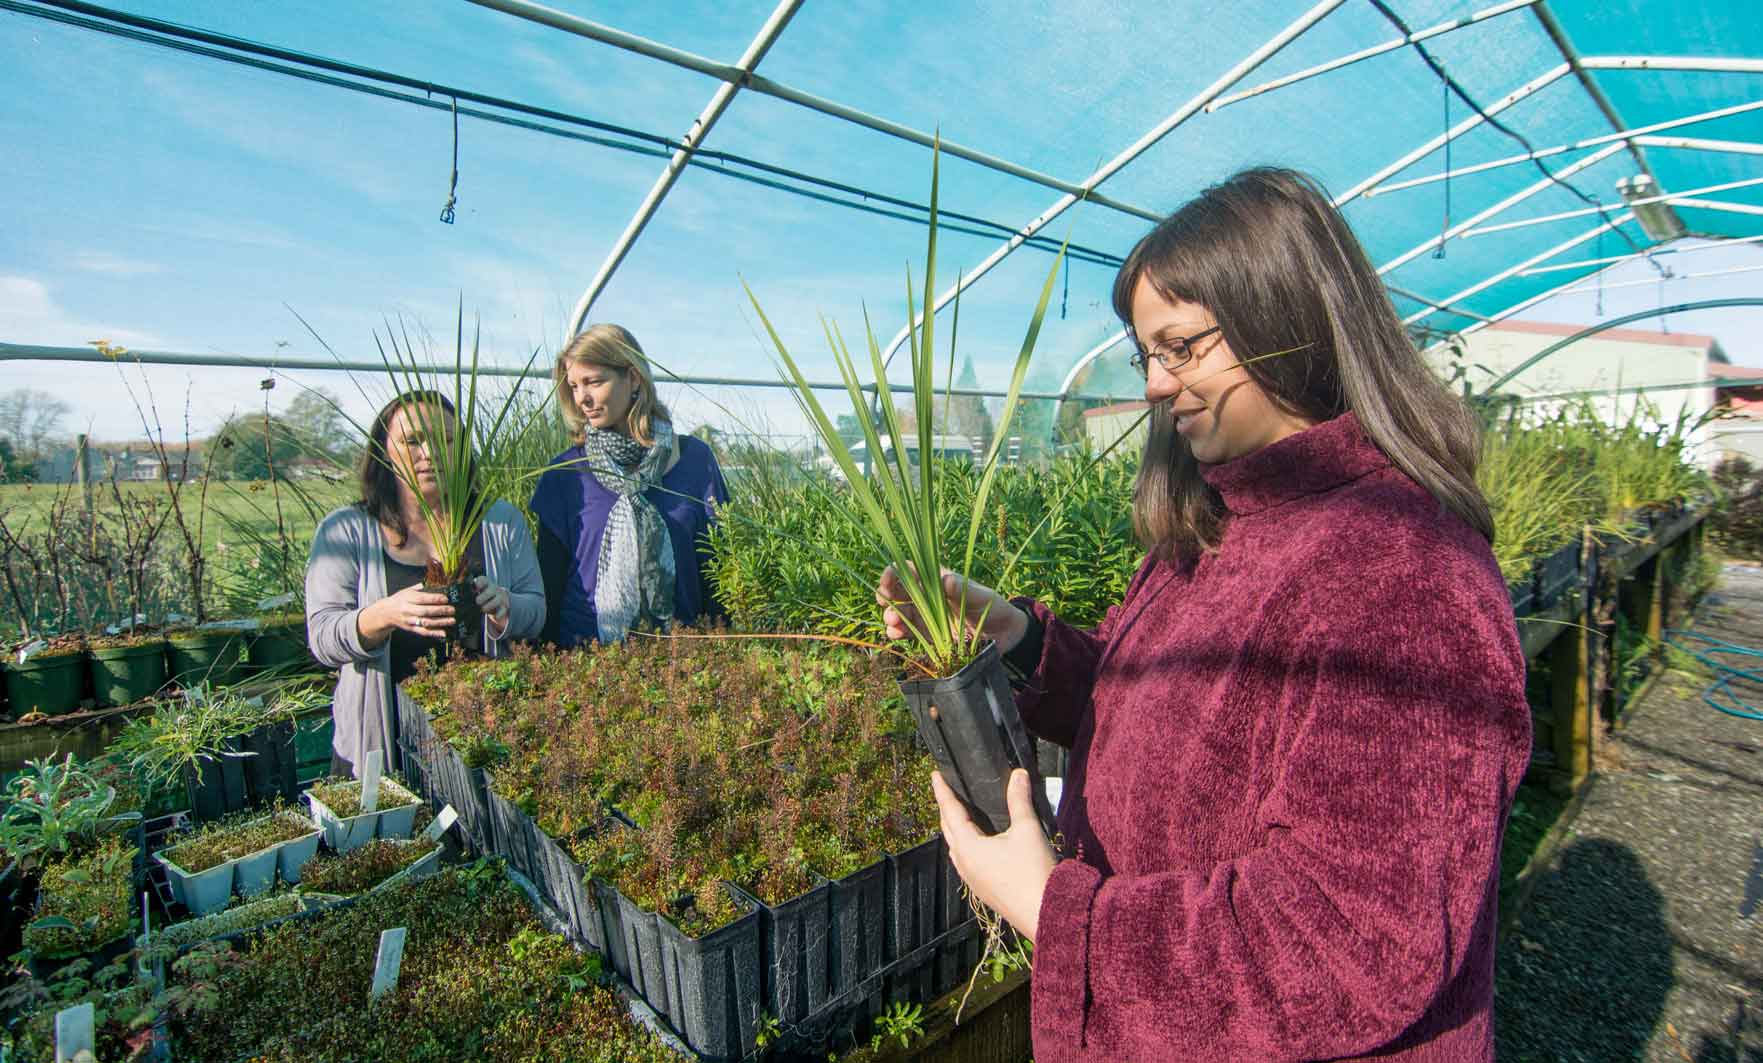 Horticulture NZ Case Study | Fuseworks